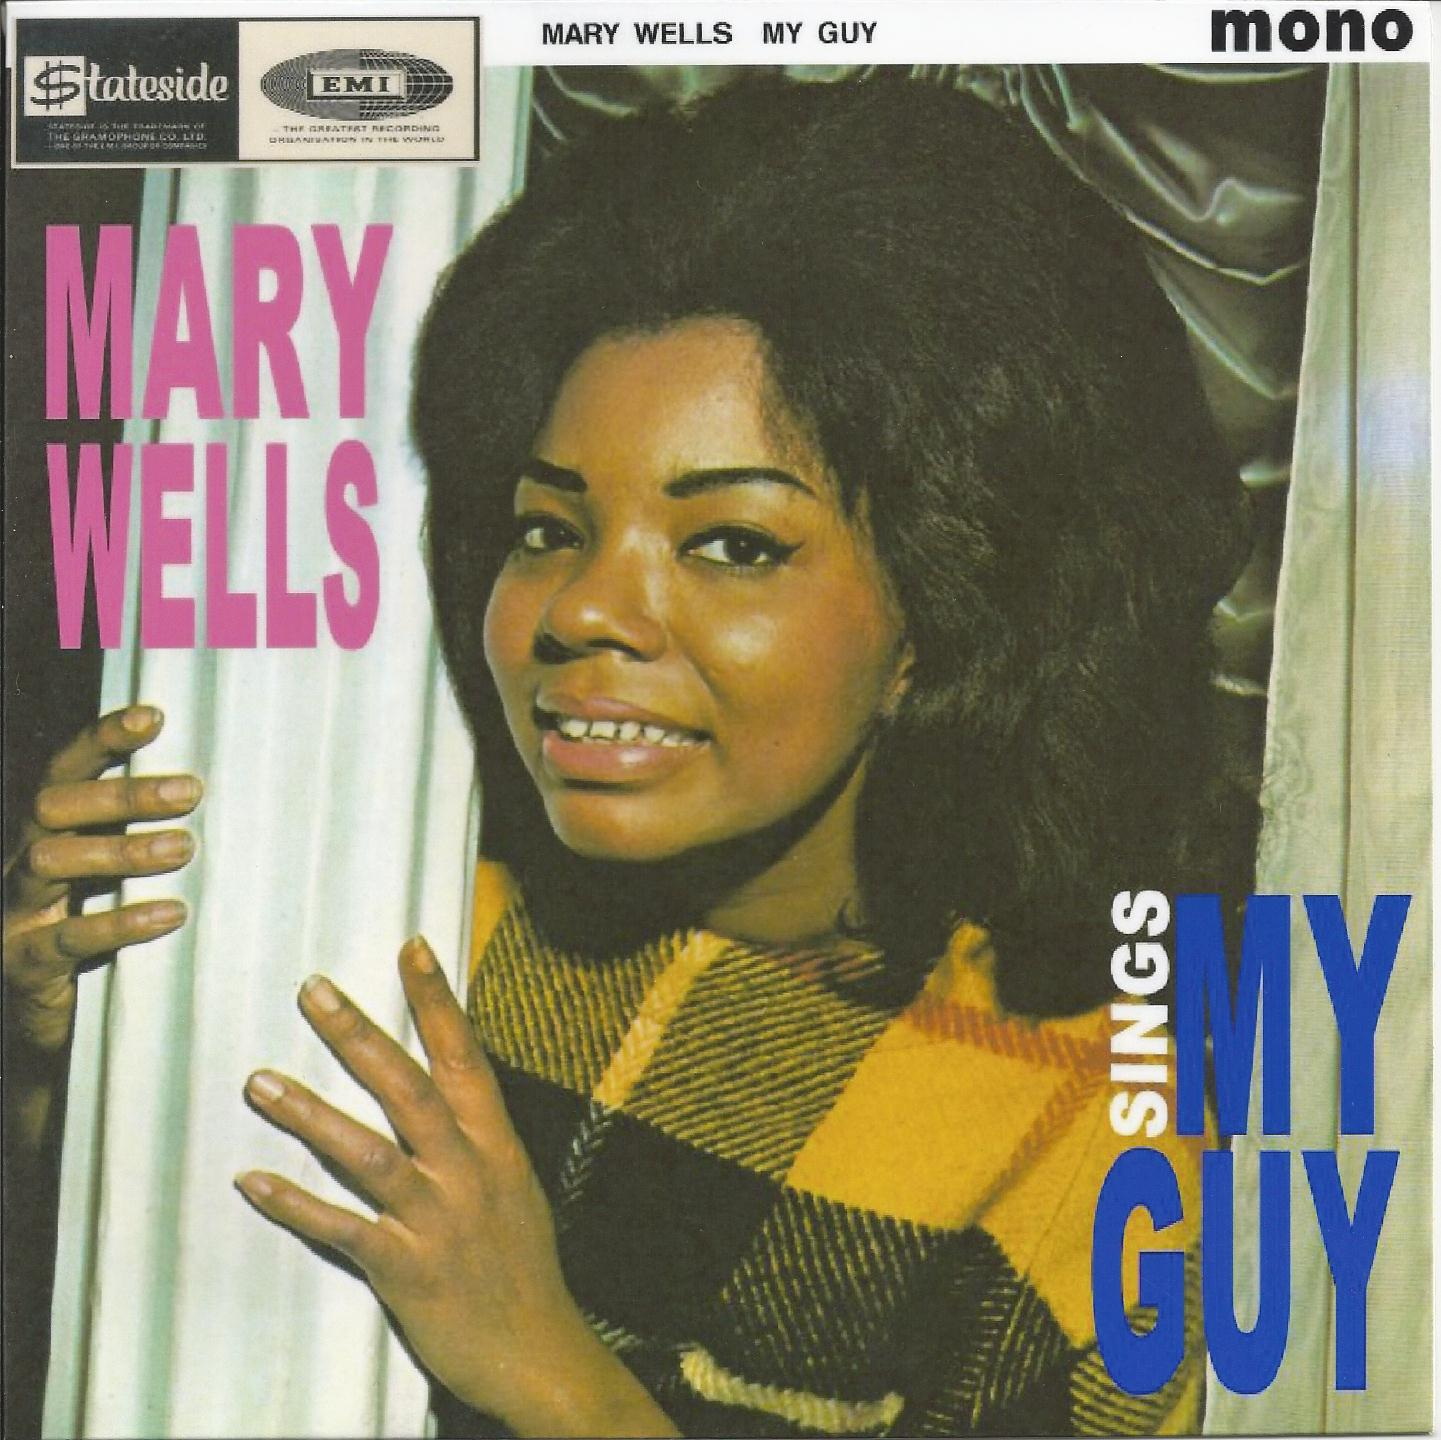 Thom S Motown Record Collection Mary Wells Album Covers